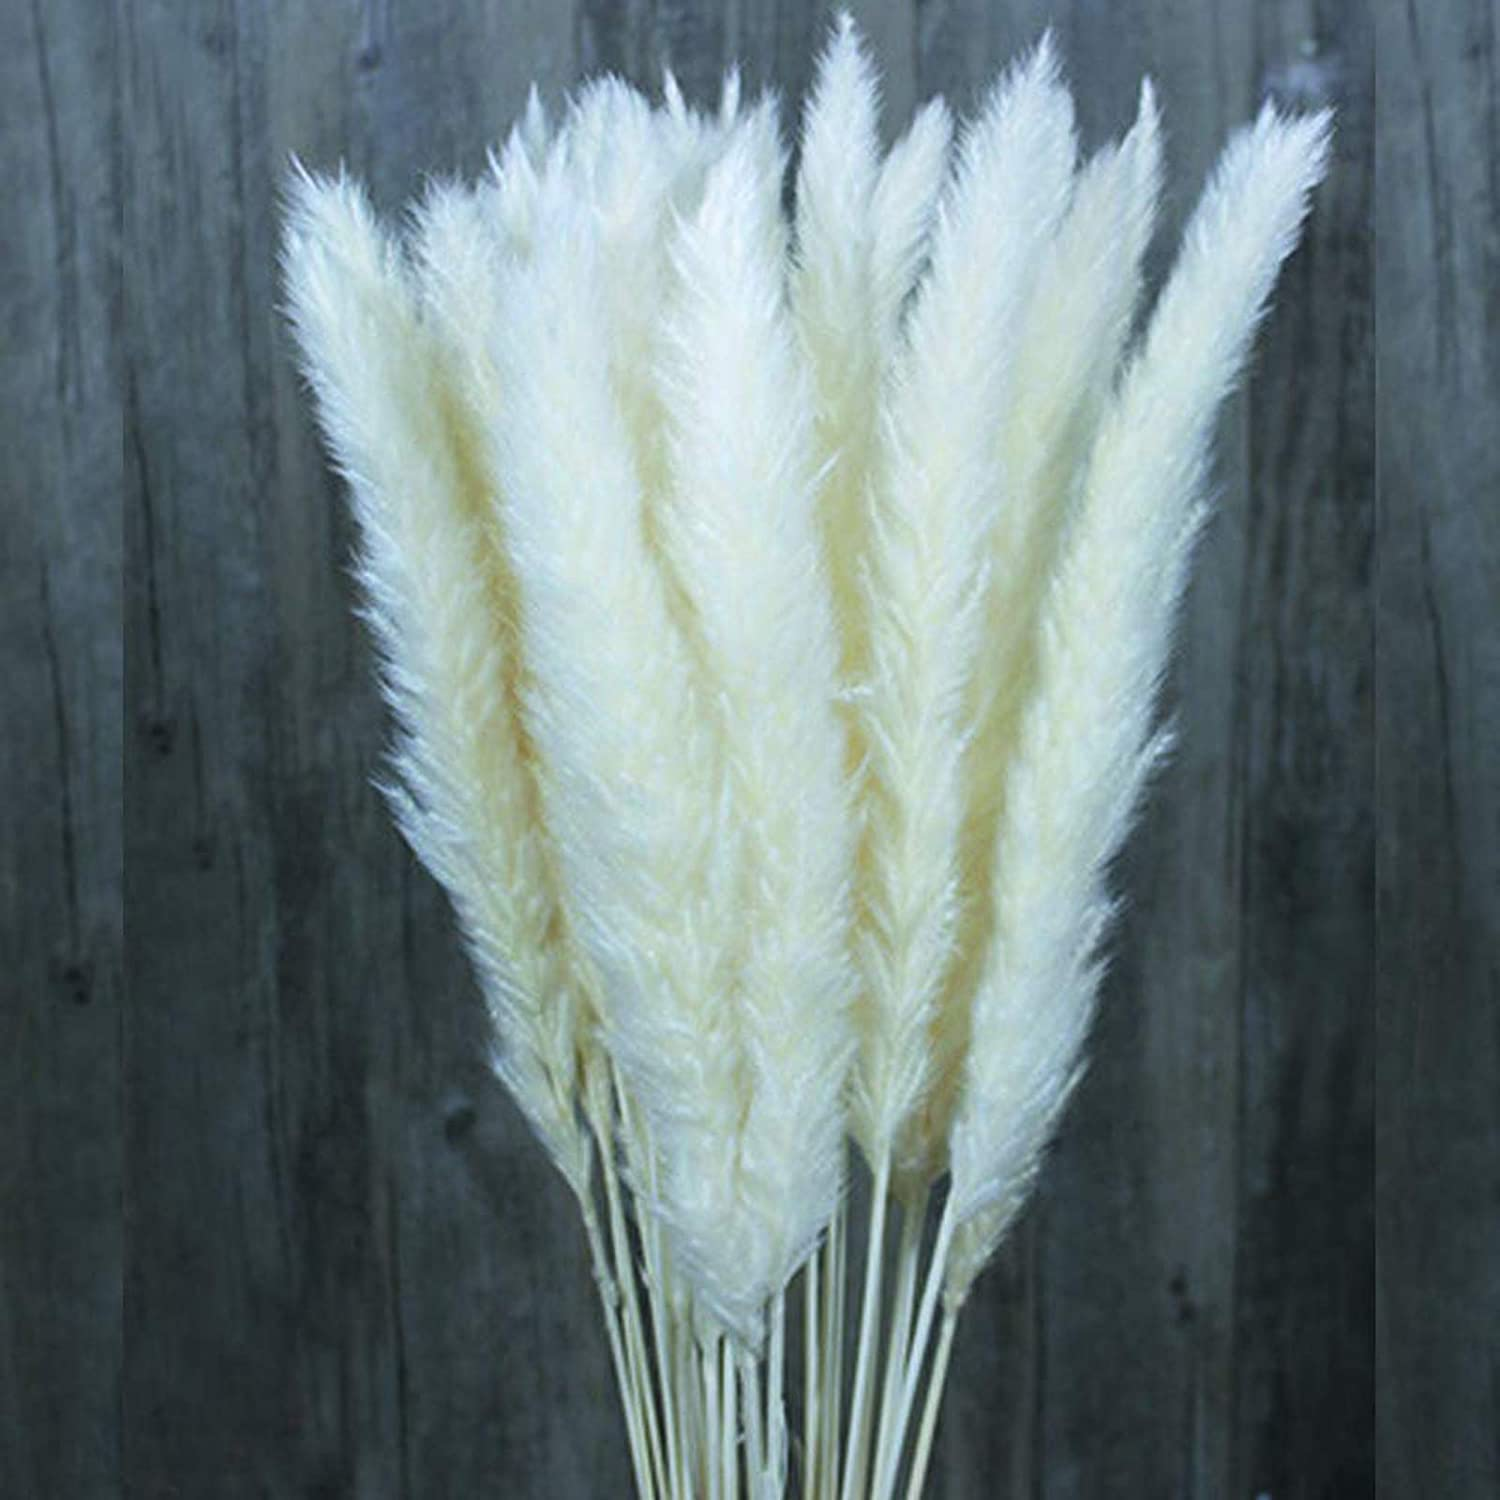 30/60 Pcs Natural Dried Flowers Pampas Grass,Wedding Flower Bunch,Phragmites Communis Bouquet for Floral Arrangements Home Decor (White, 60pcs)